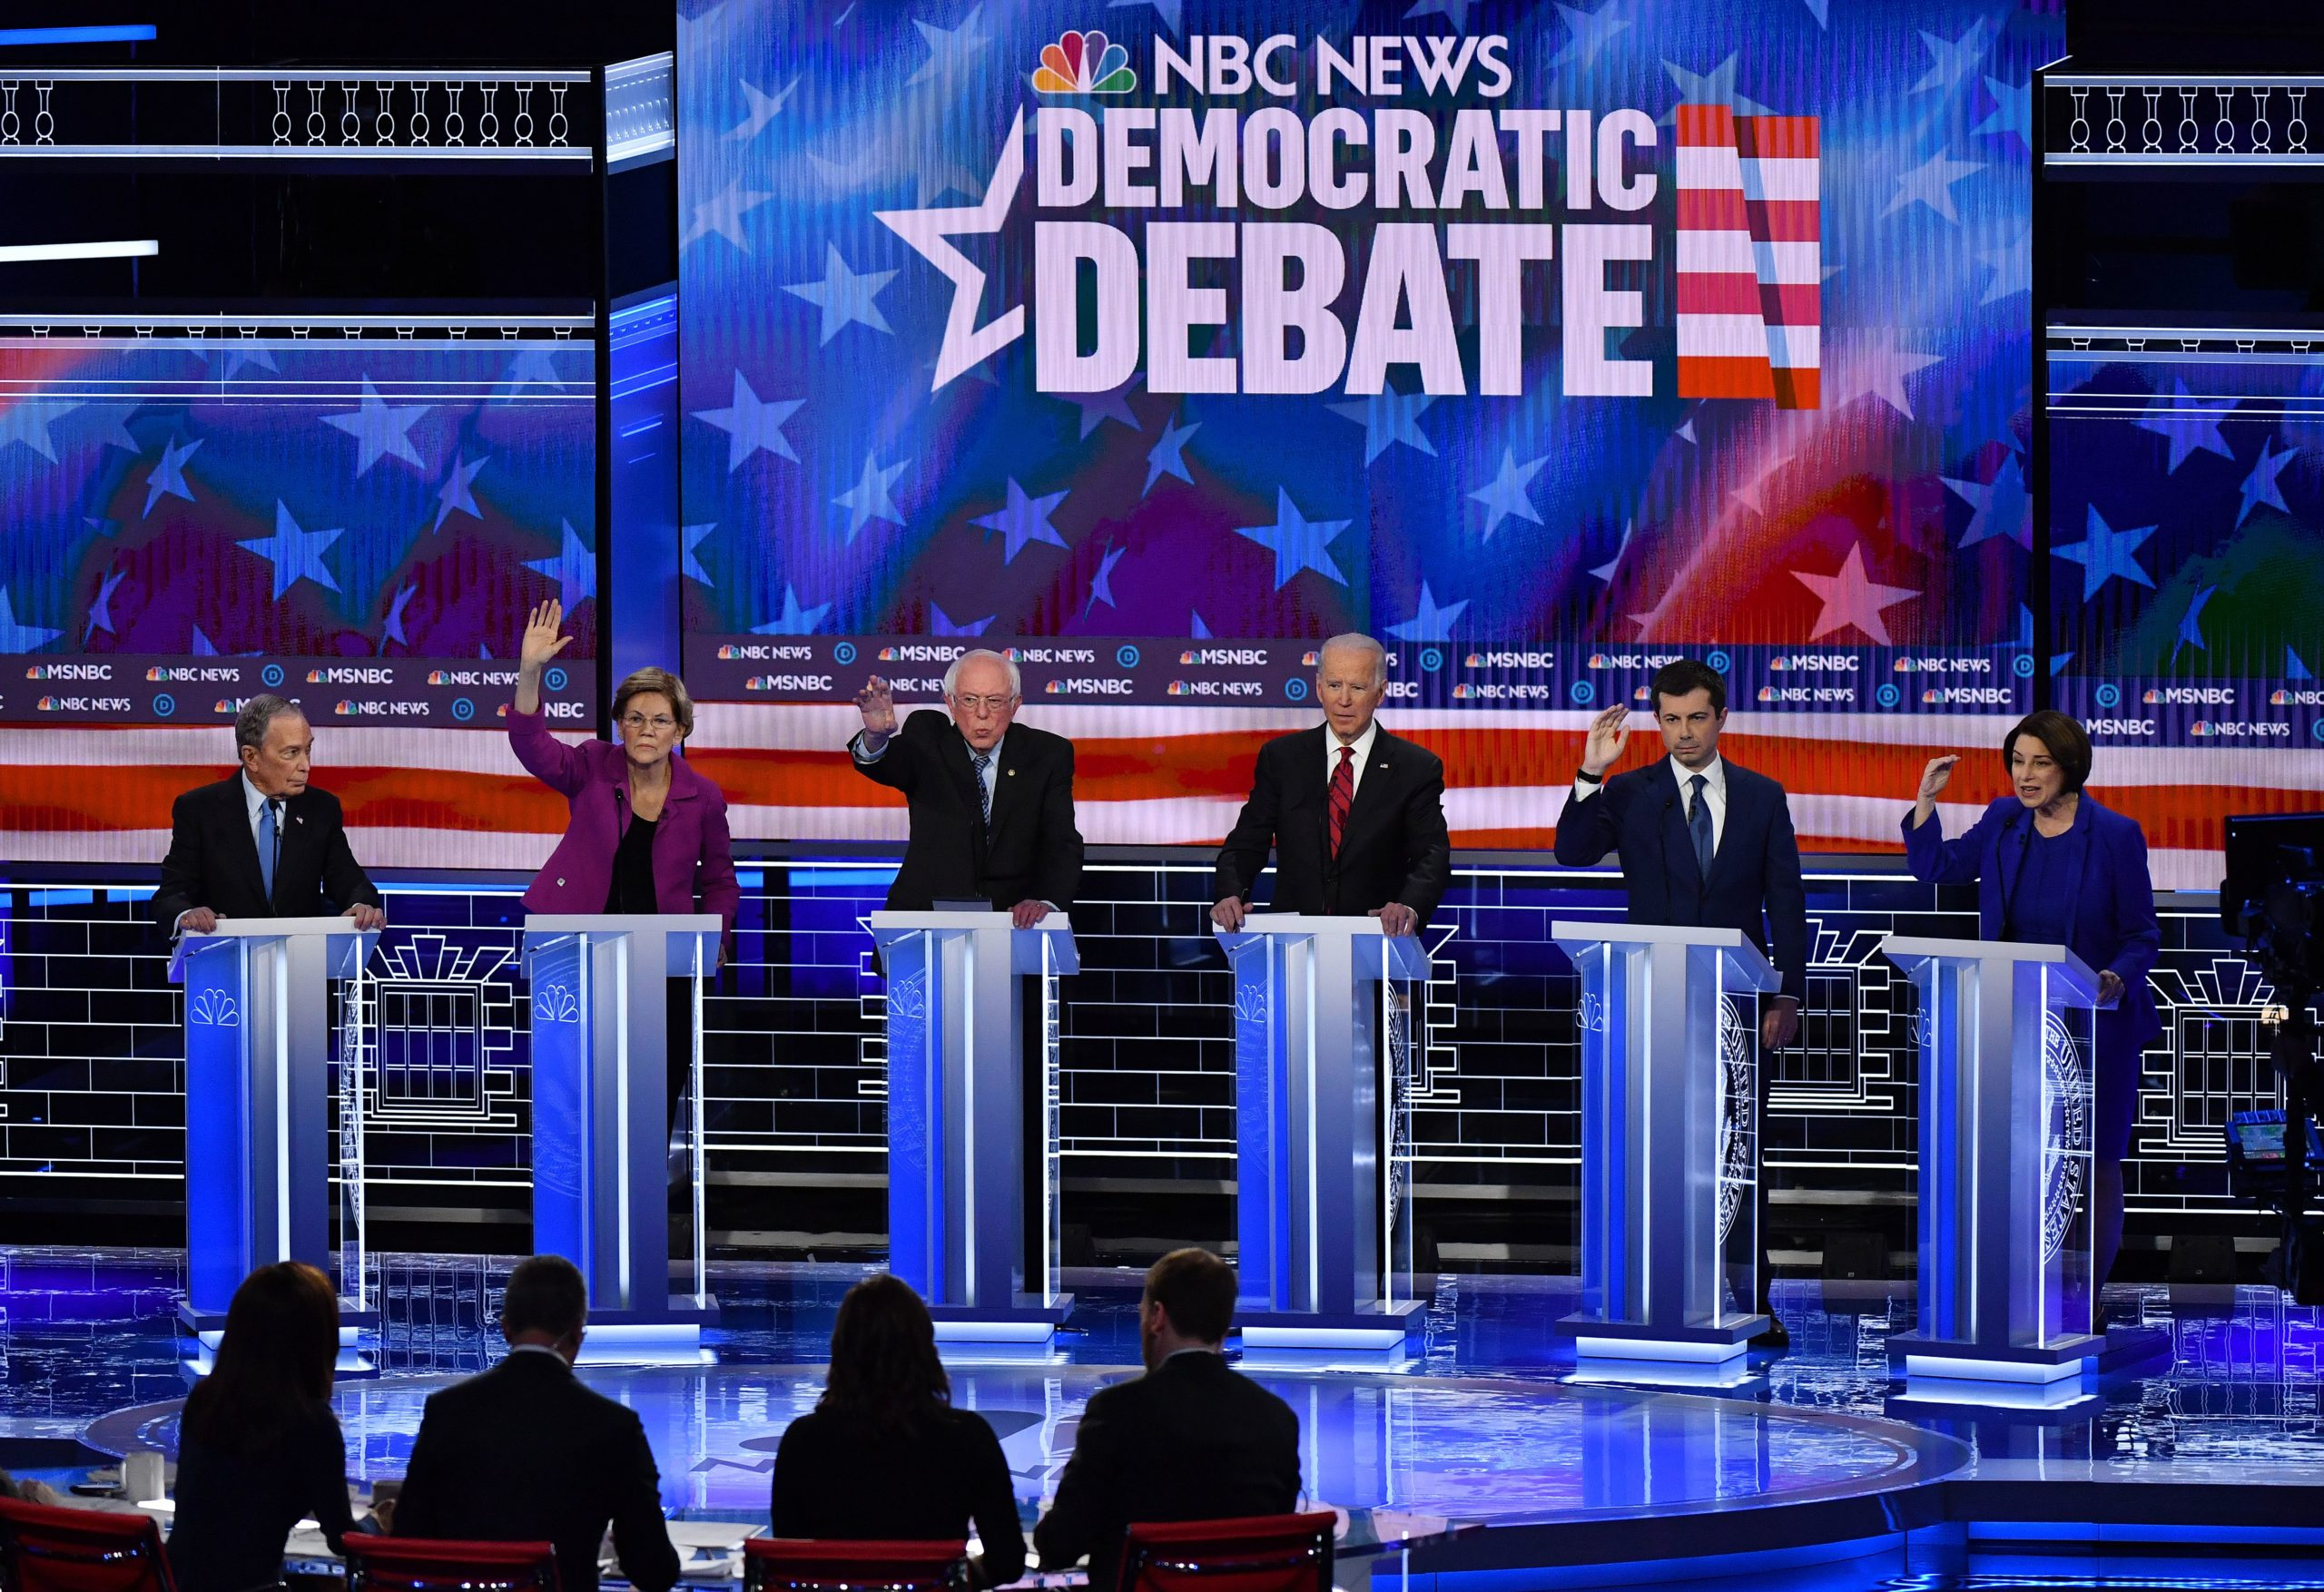 Military: Democratic presidential hopefuls Mike Bloomberg, Elizabeth Warren, Bernie Sanders, Joe Biden, Pete Buttigieg and Amy Klobuchar have all pledged to repeal the ban